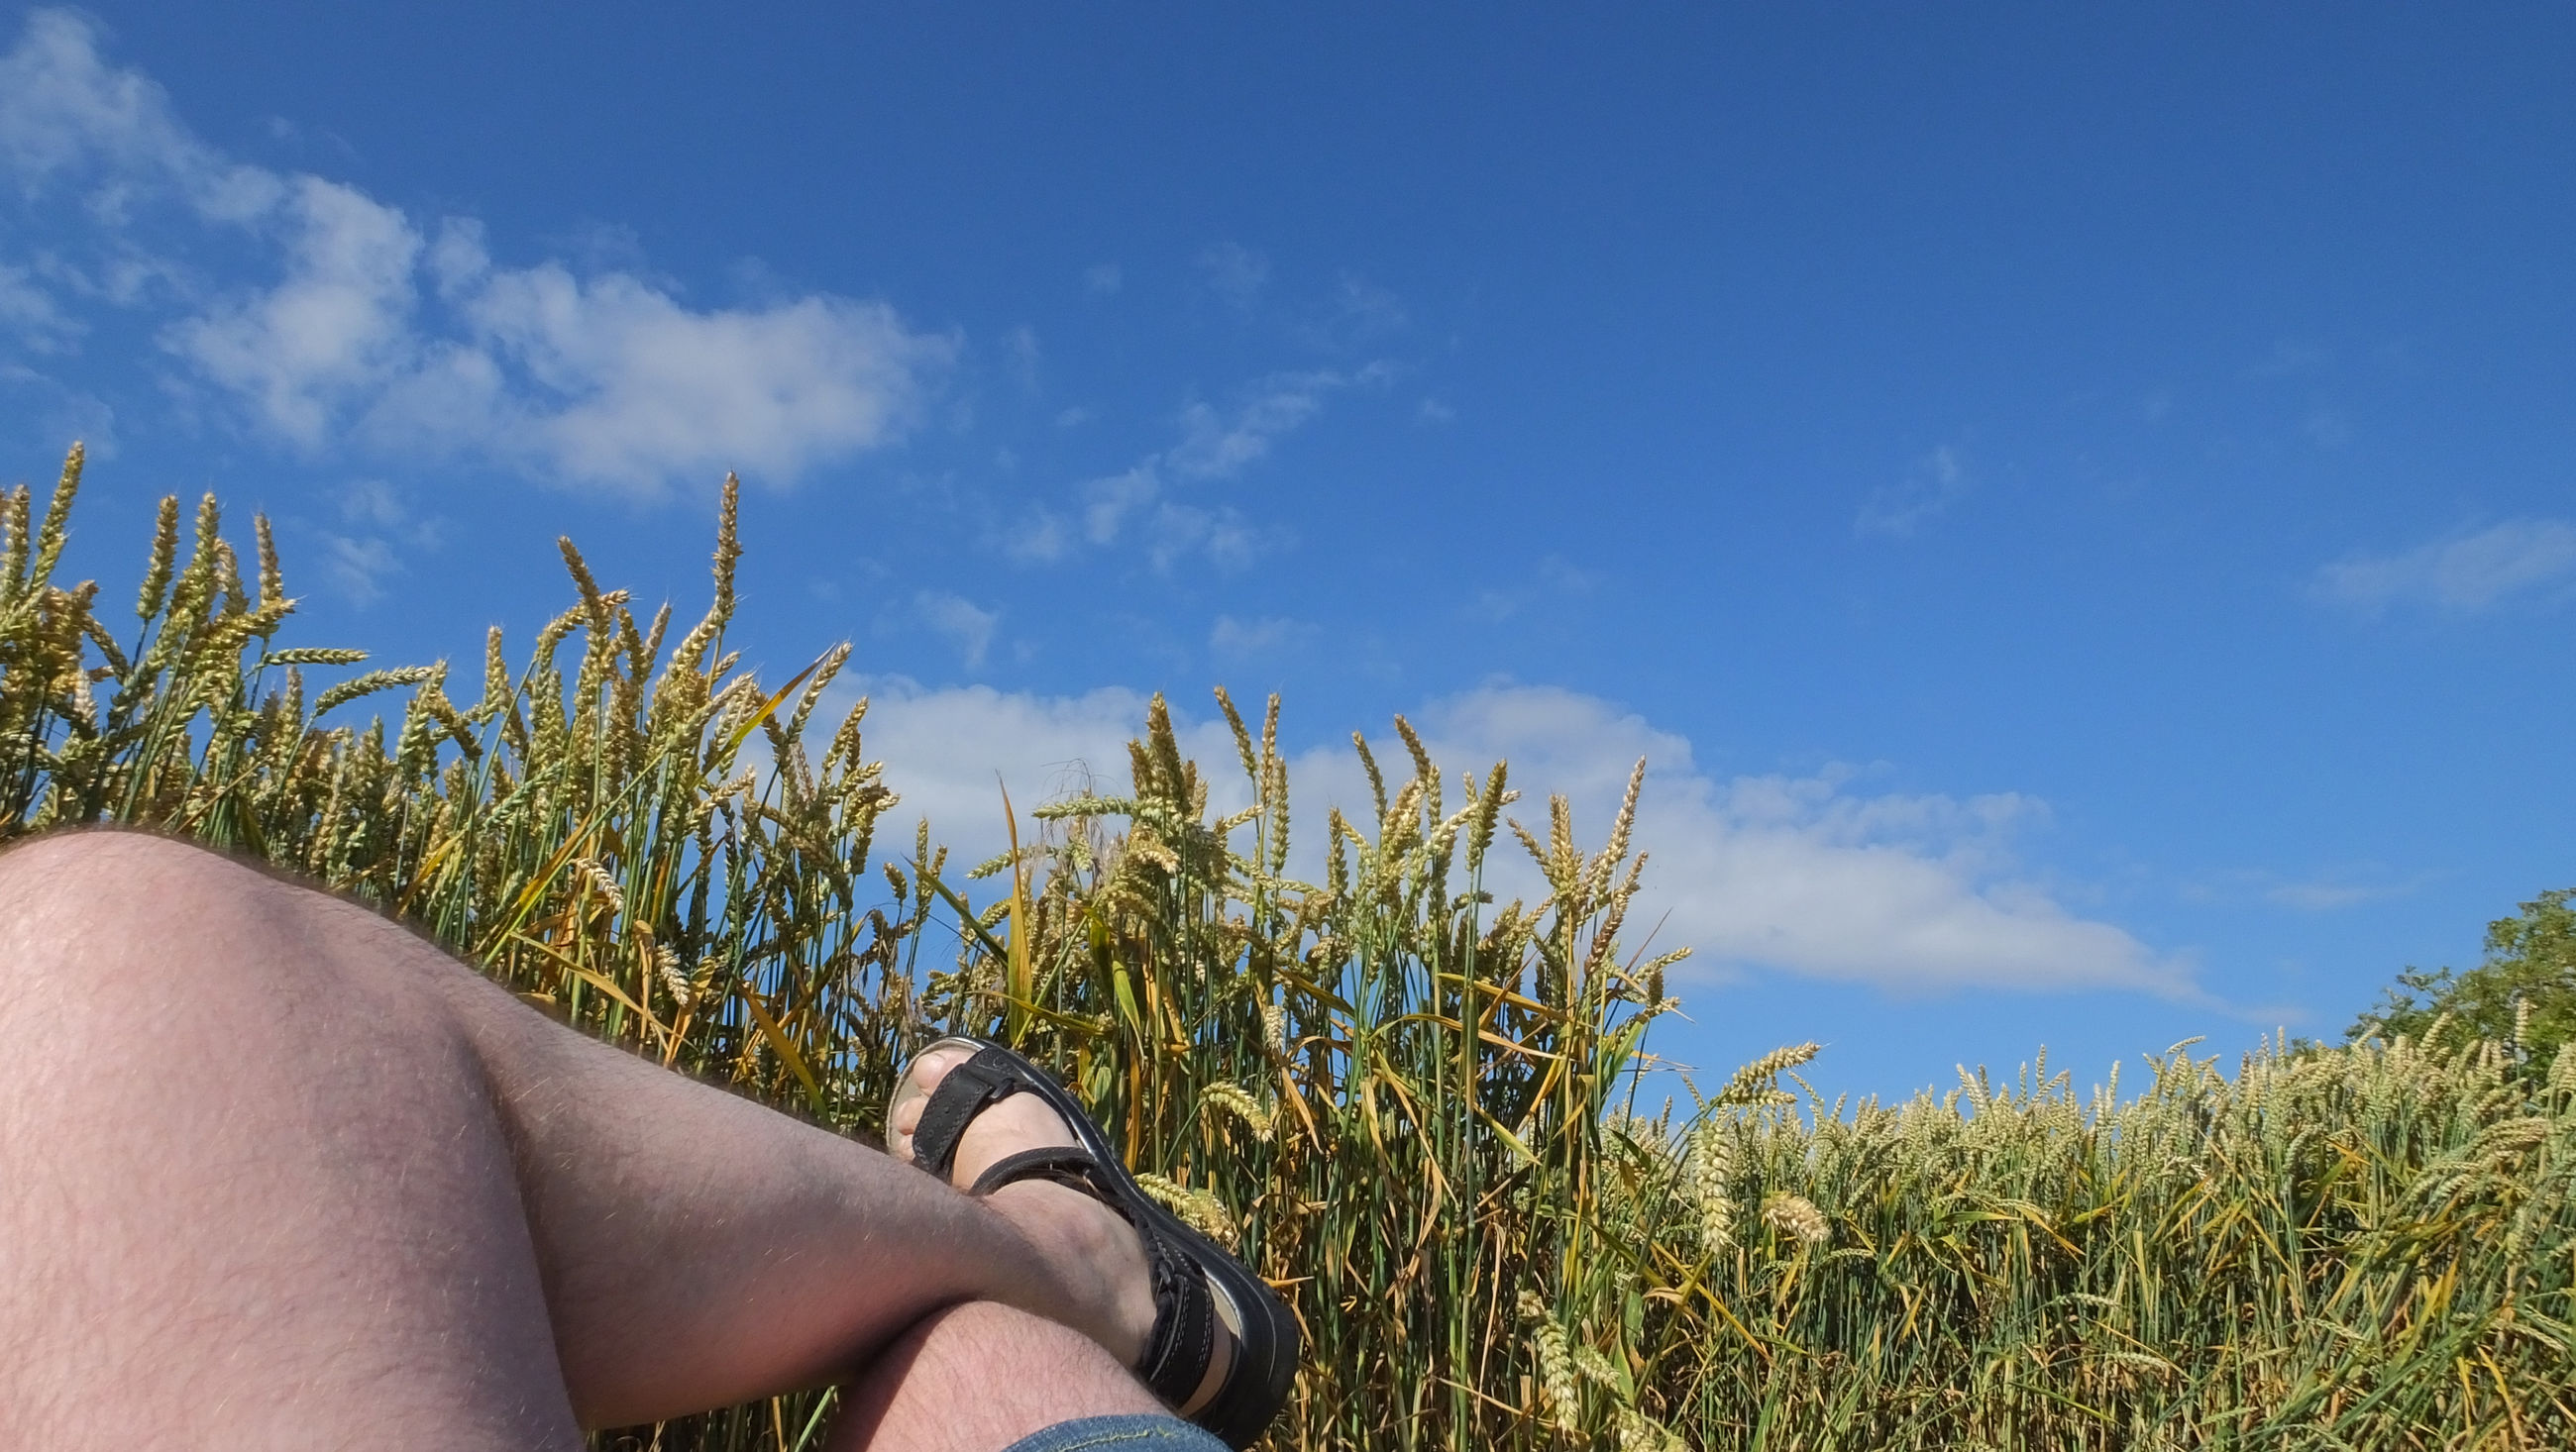 human body part, plant, real people, sky, cloud - sky, body part, field, one person, lifestyles, nature, land, leisure activity, day, personal perspective, grass, human leg, low section, growth, blue, outdoors, hand, human limb, human foot, finger